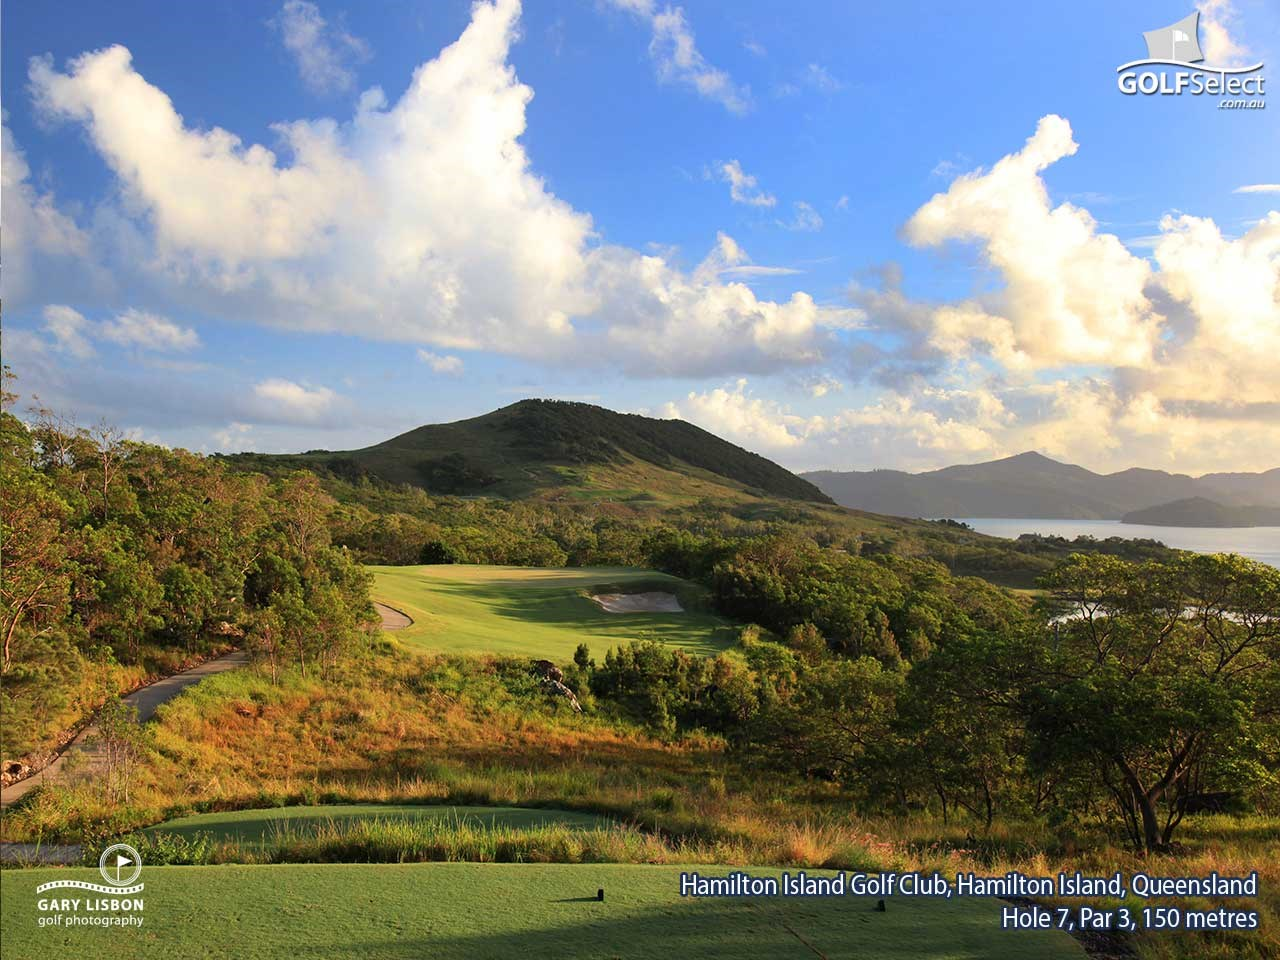 Hamilton Island Golf Club Hole 7, Par 3, 150 metres